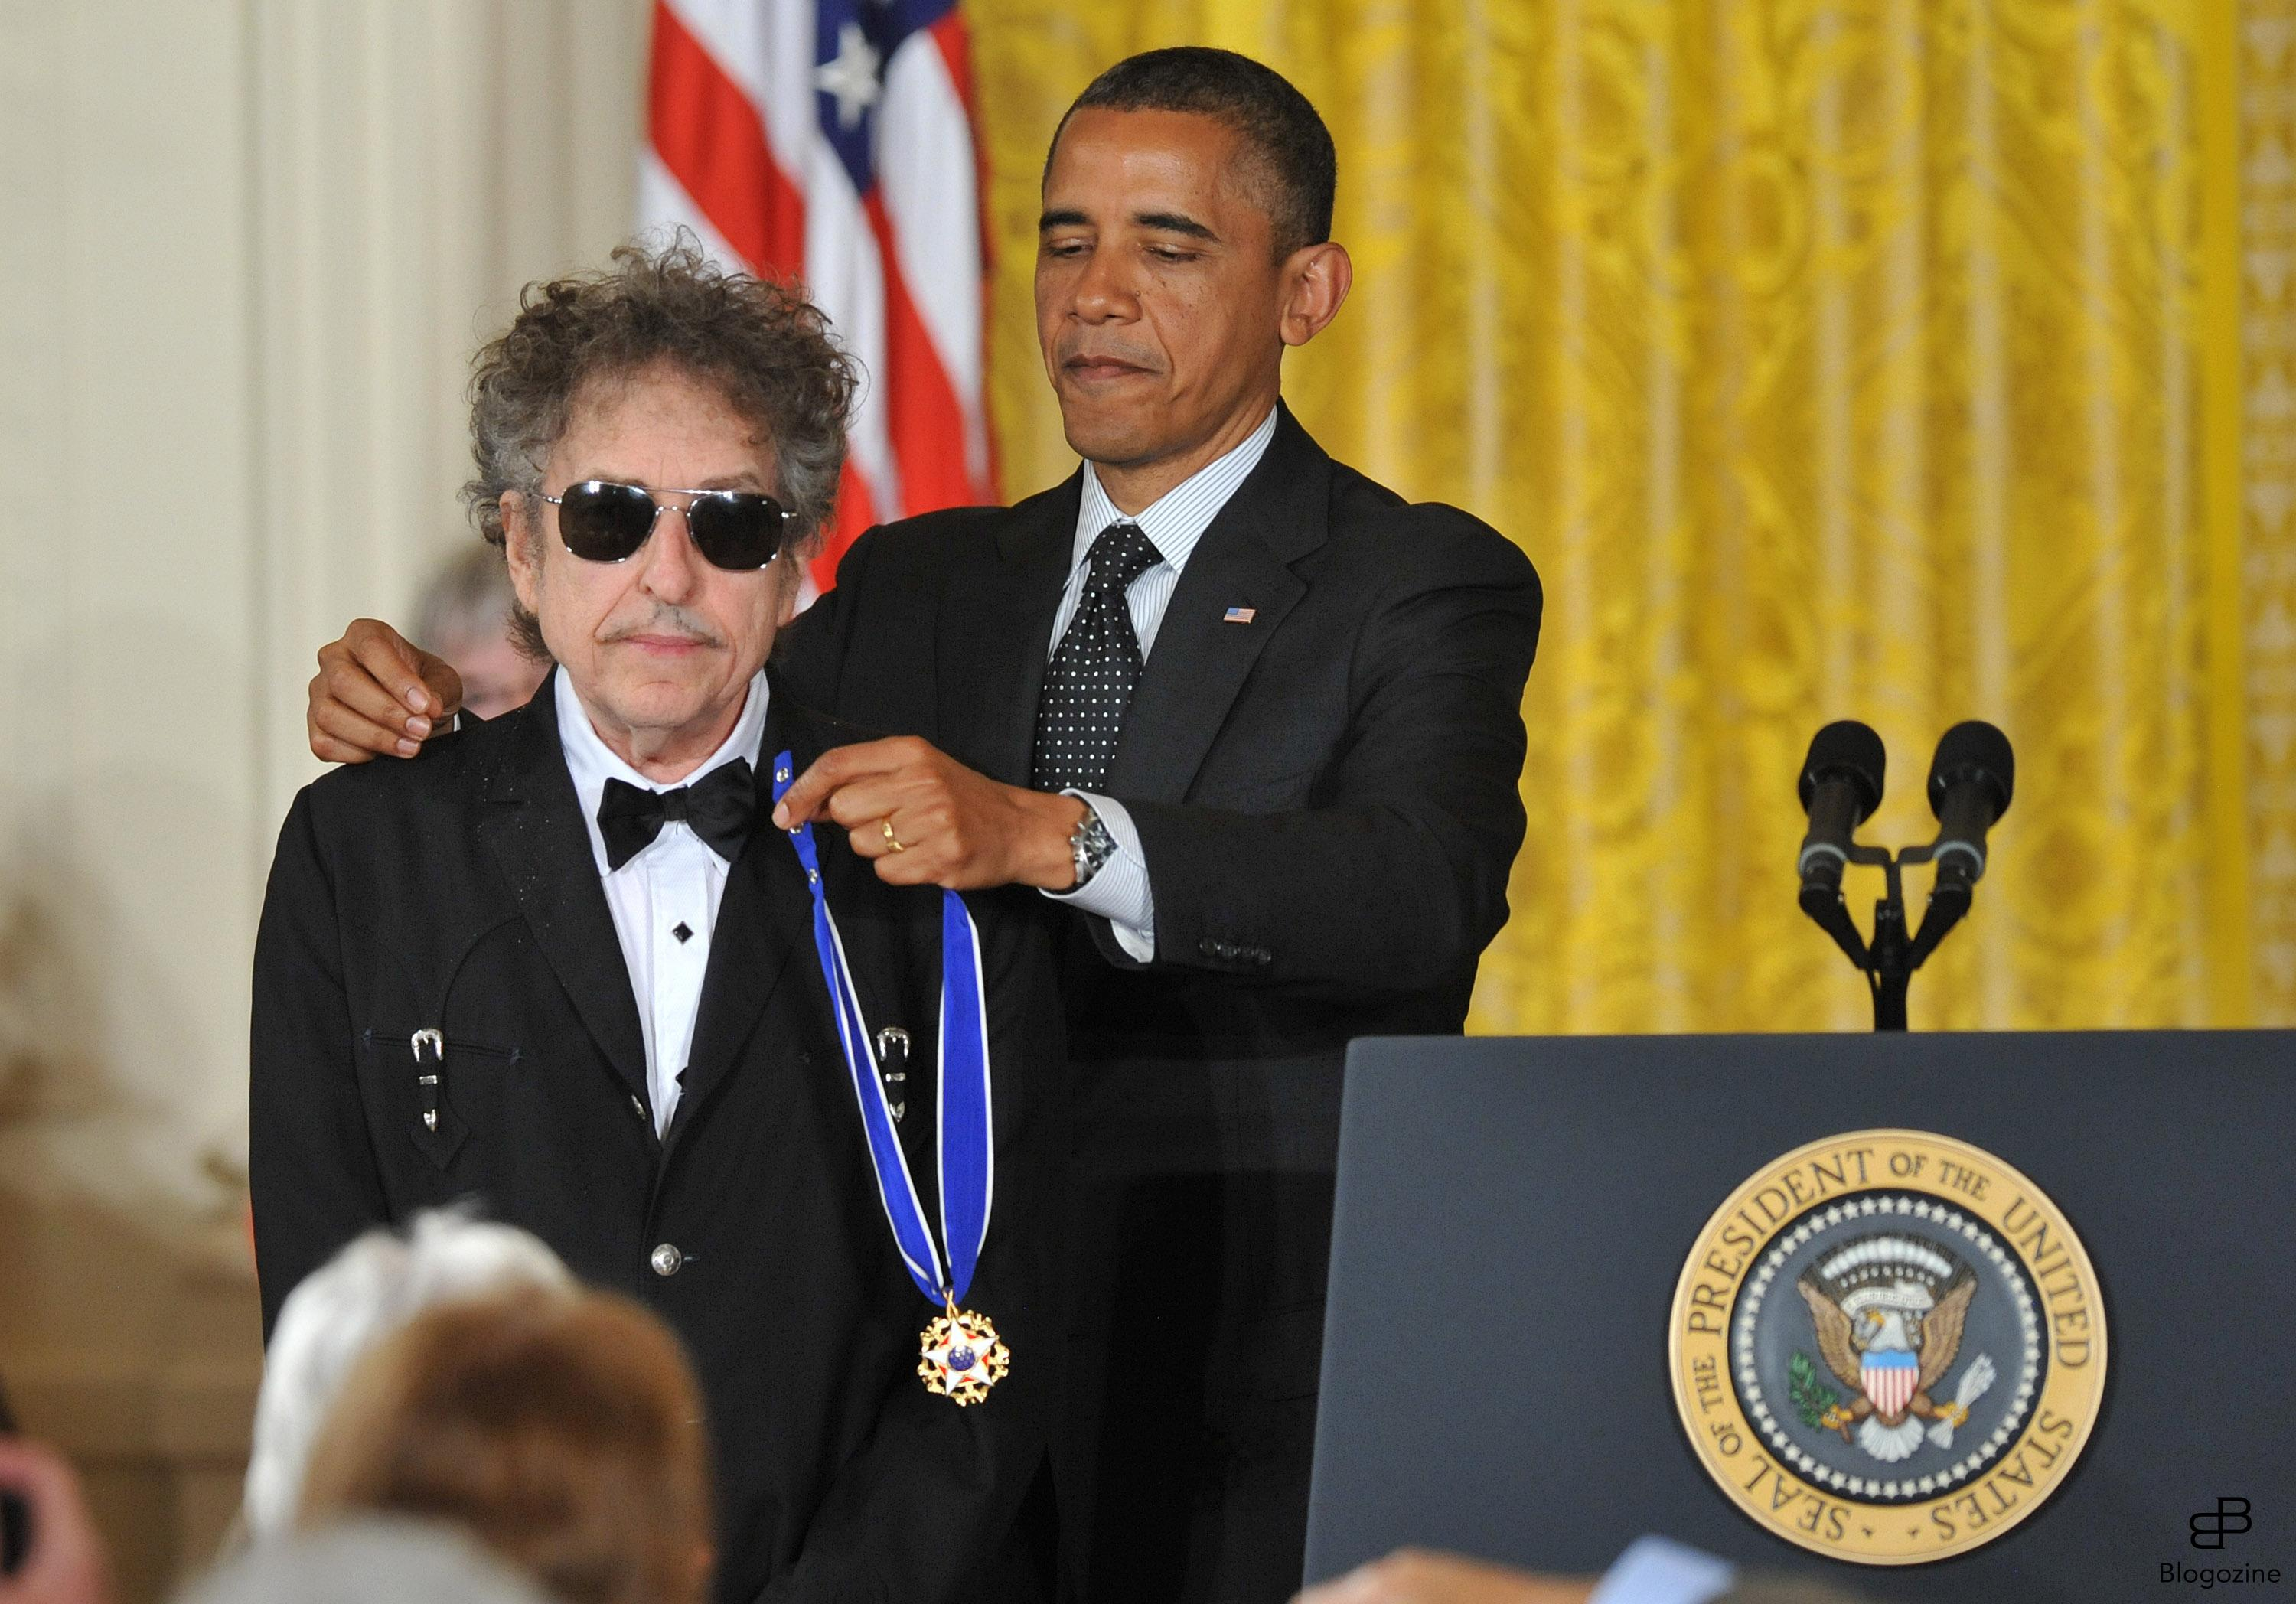 1568530 President Barack Obama awards the the Presidential Medal of Freedom to singer/songwriter Bob Dylan during a ceremony in the East Room at the White House in Washington on May 29, 2012. The Medal of Freedom is our Nation?s highest civilian honor, presented to individuals who have made especially meritorious contributions to the security or national interests of the United States, to world peace, or to cultural or other significant public or private endeavors. UPI/Kevin Dietsch Photo: KEIVN DIETSCH/UPI Code: 4056/WAP20120529301 COPYRIGHT STELLA PICTURES Photo: KEIVN DIETSCH/UPI Code: 4056/WAP20120529301 COPYRIGHT STELLA PICTURES